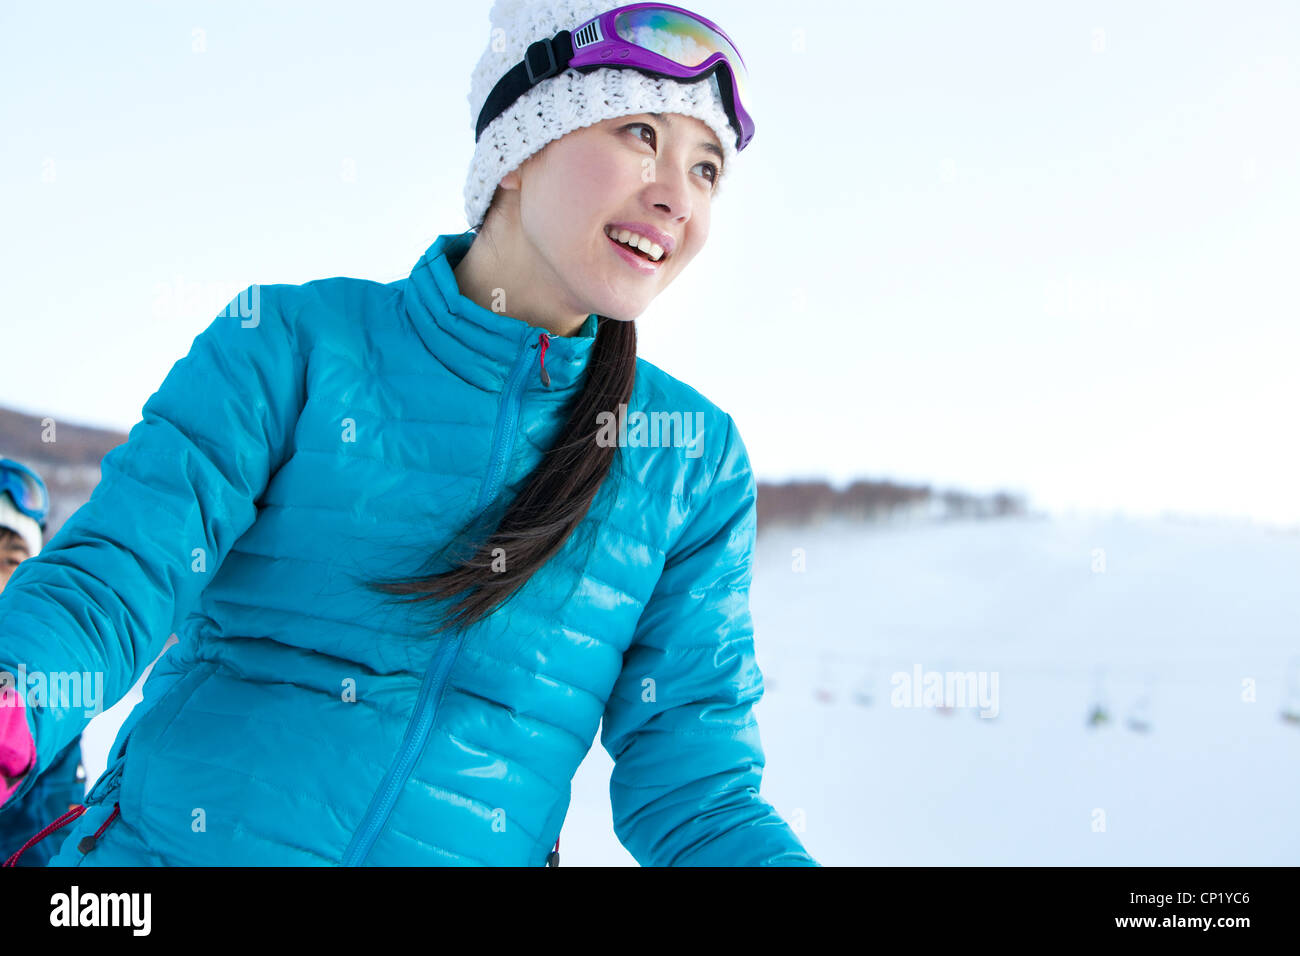 Young people in skiing resort Stock Photo